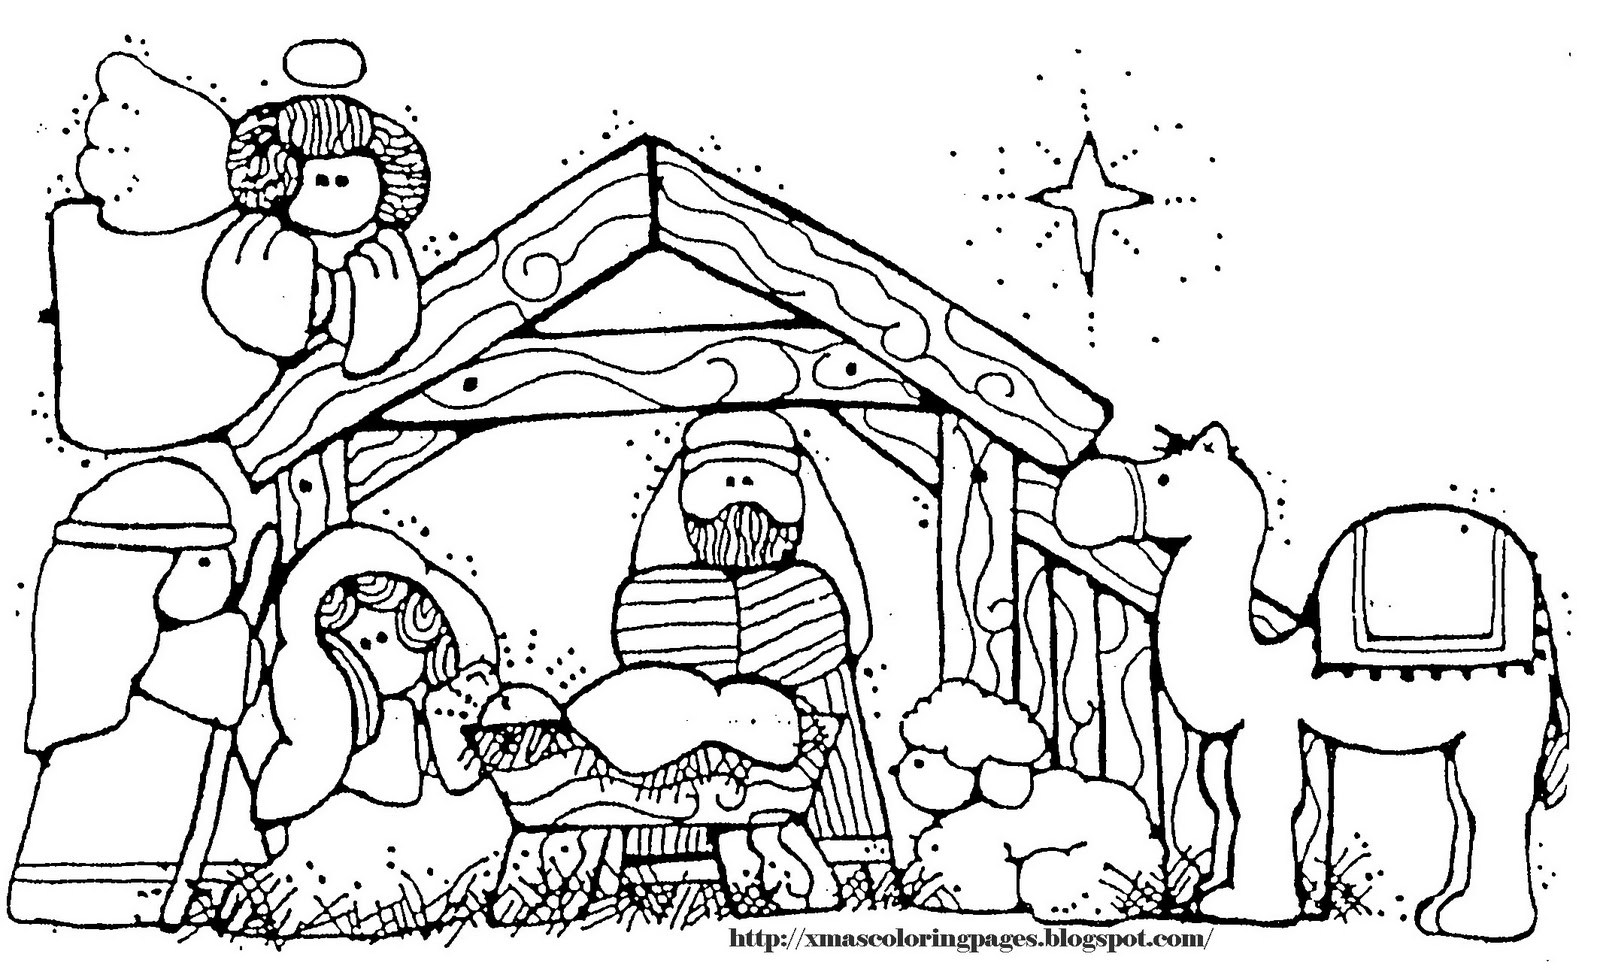 Christmas Manger Drawing at GetDrawings.com | Free for personal use ...